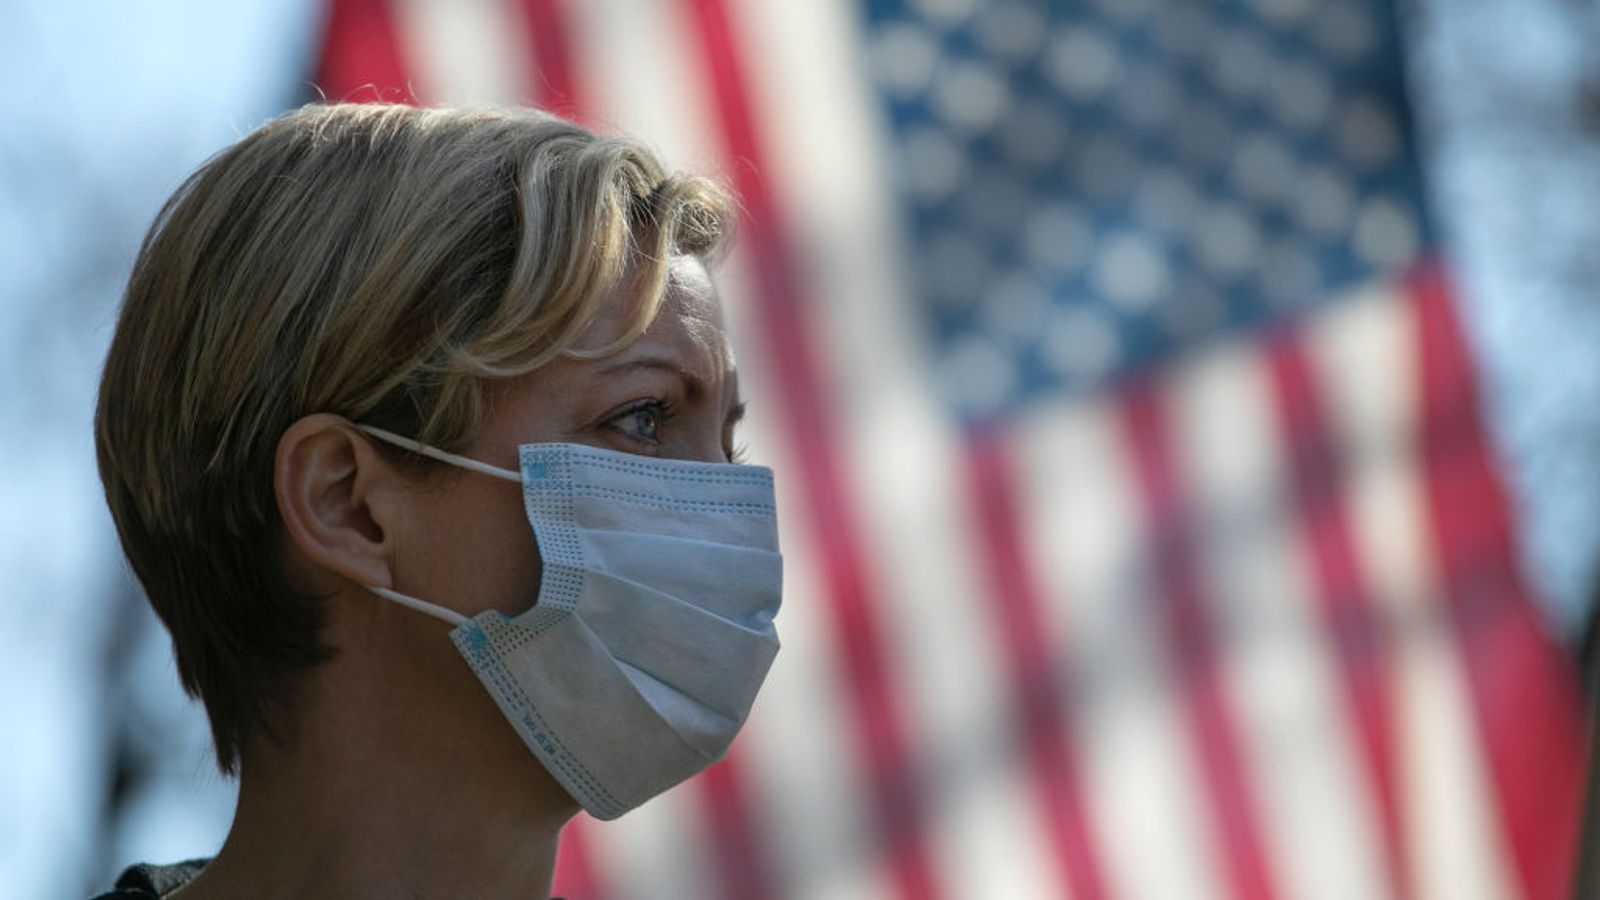 Coronavirus: US deaths could be 28% higher than official figures, warns study thumbnail